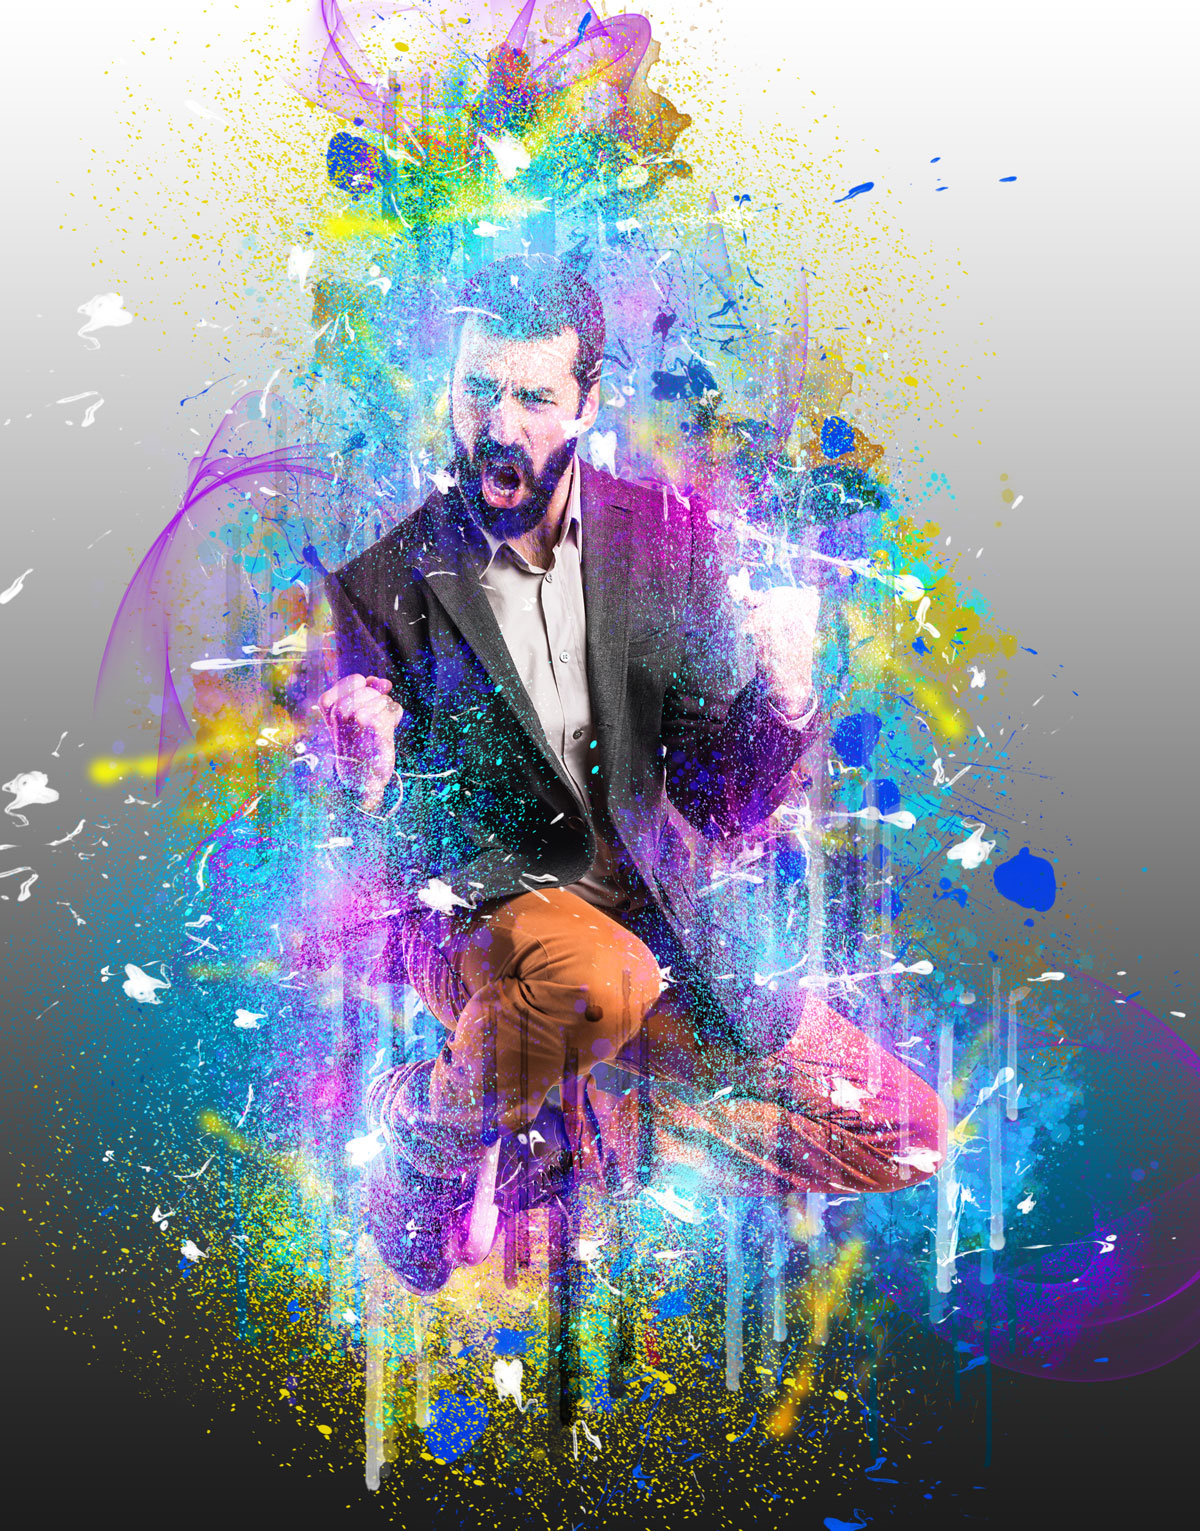 Abstract Painting Photoshop Action 26539921..